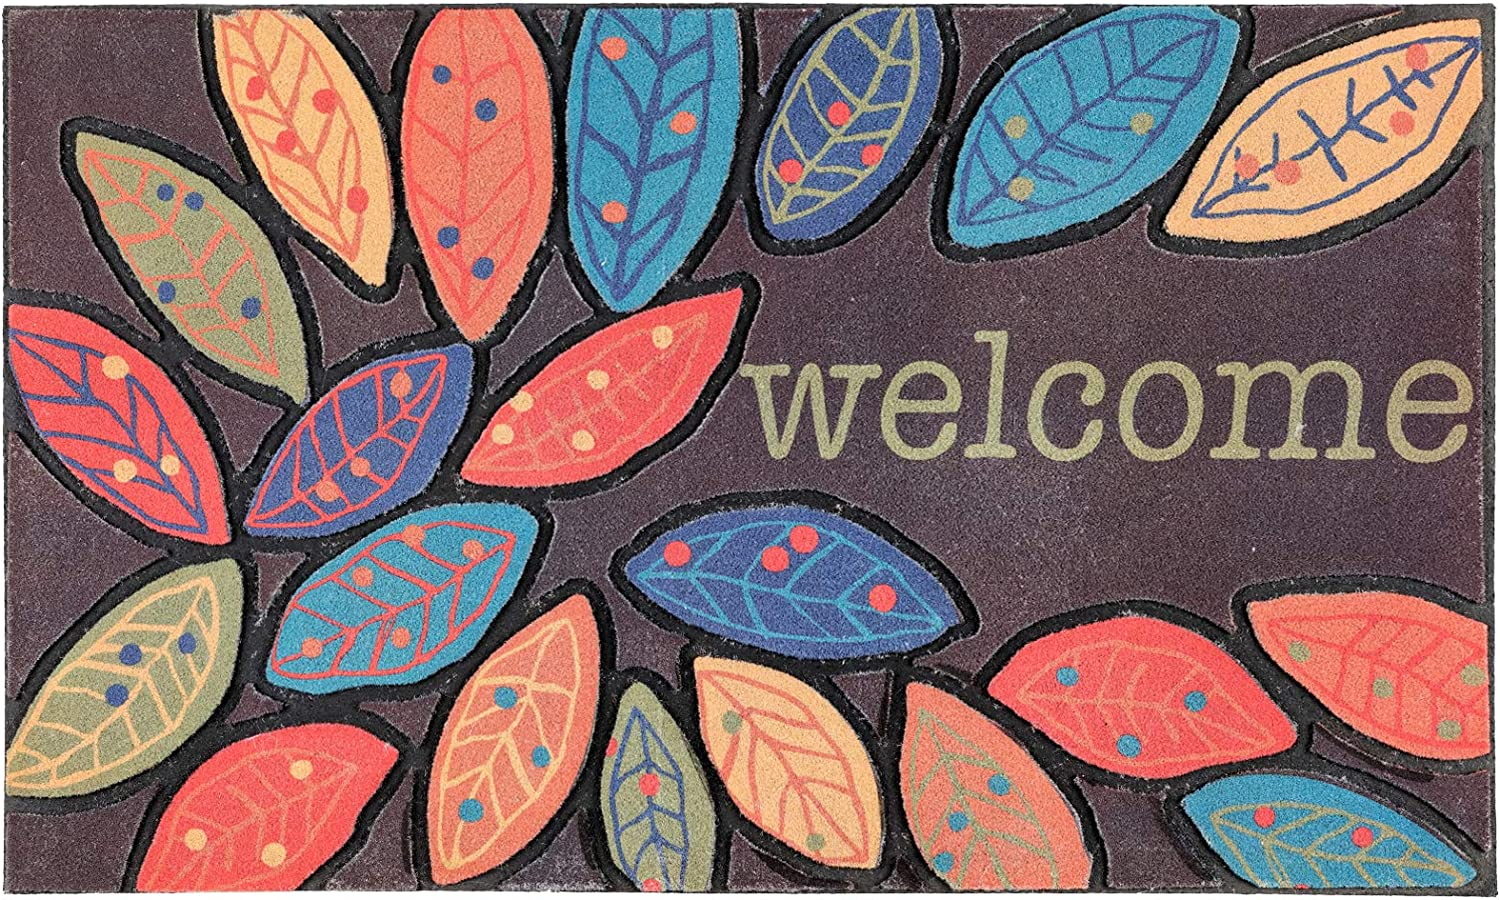 CHICHIC Door Mat Welcome Mat 17x 30 Inch Front Door Mat Outdoor for Home Entrance Outdoor Mat for Outside Entry Way Doormat Entry Rugs, Heavy Duty Non Slip Rubber Back Low Profile, Leaves